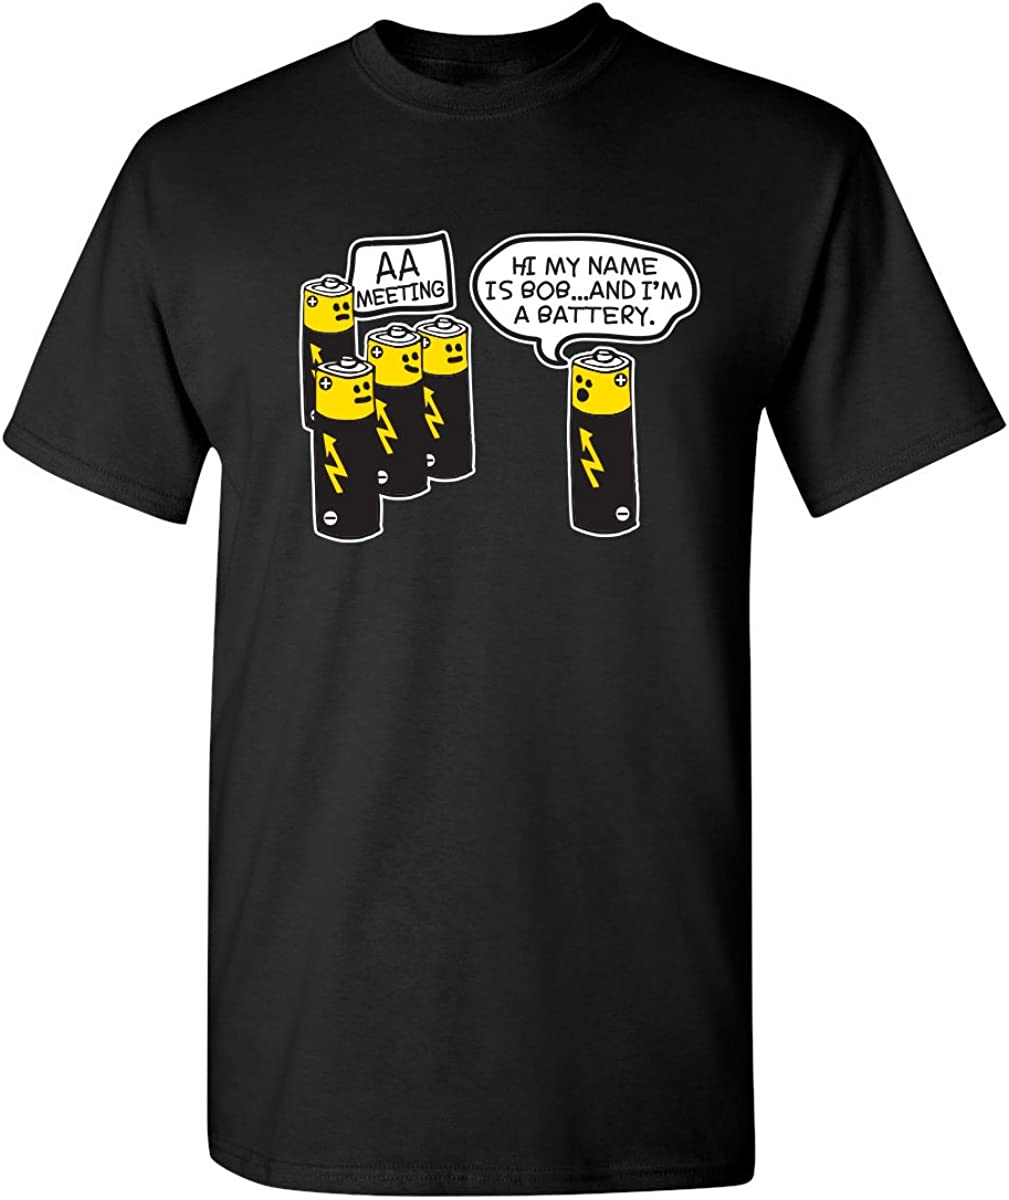 AA Battery Meeting Graphic Adult Humor Novelty Sarcastic Funny T Shirt